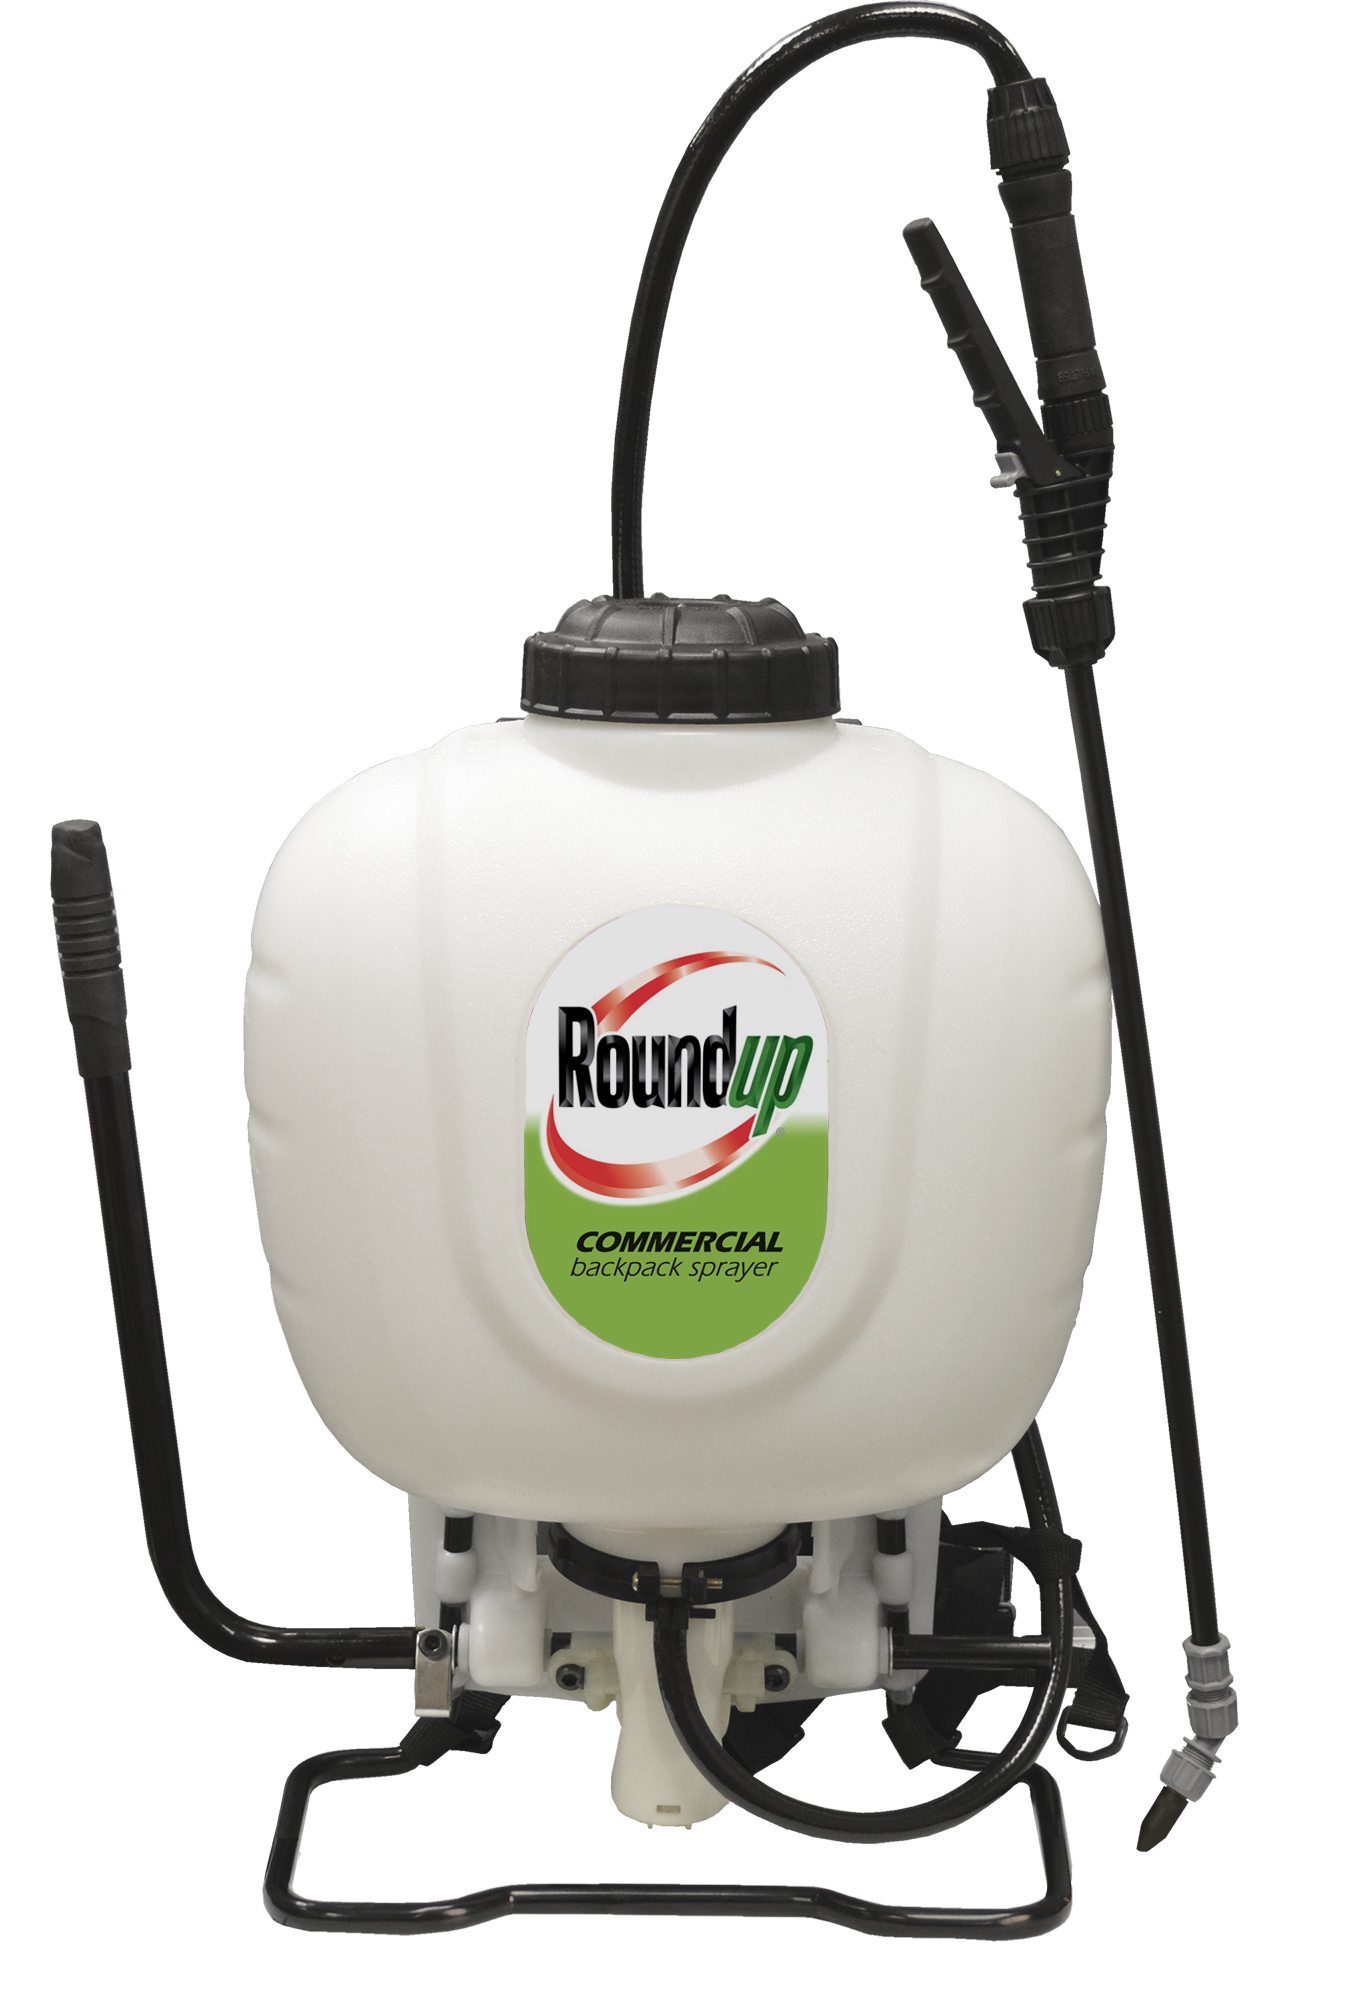 Roundup® 190426 Commercial Backpack Sprayer for Professionals